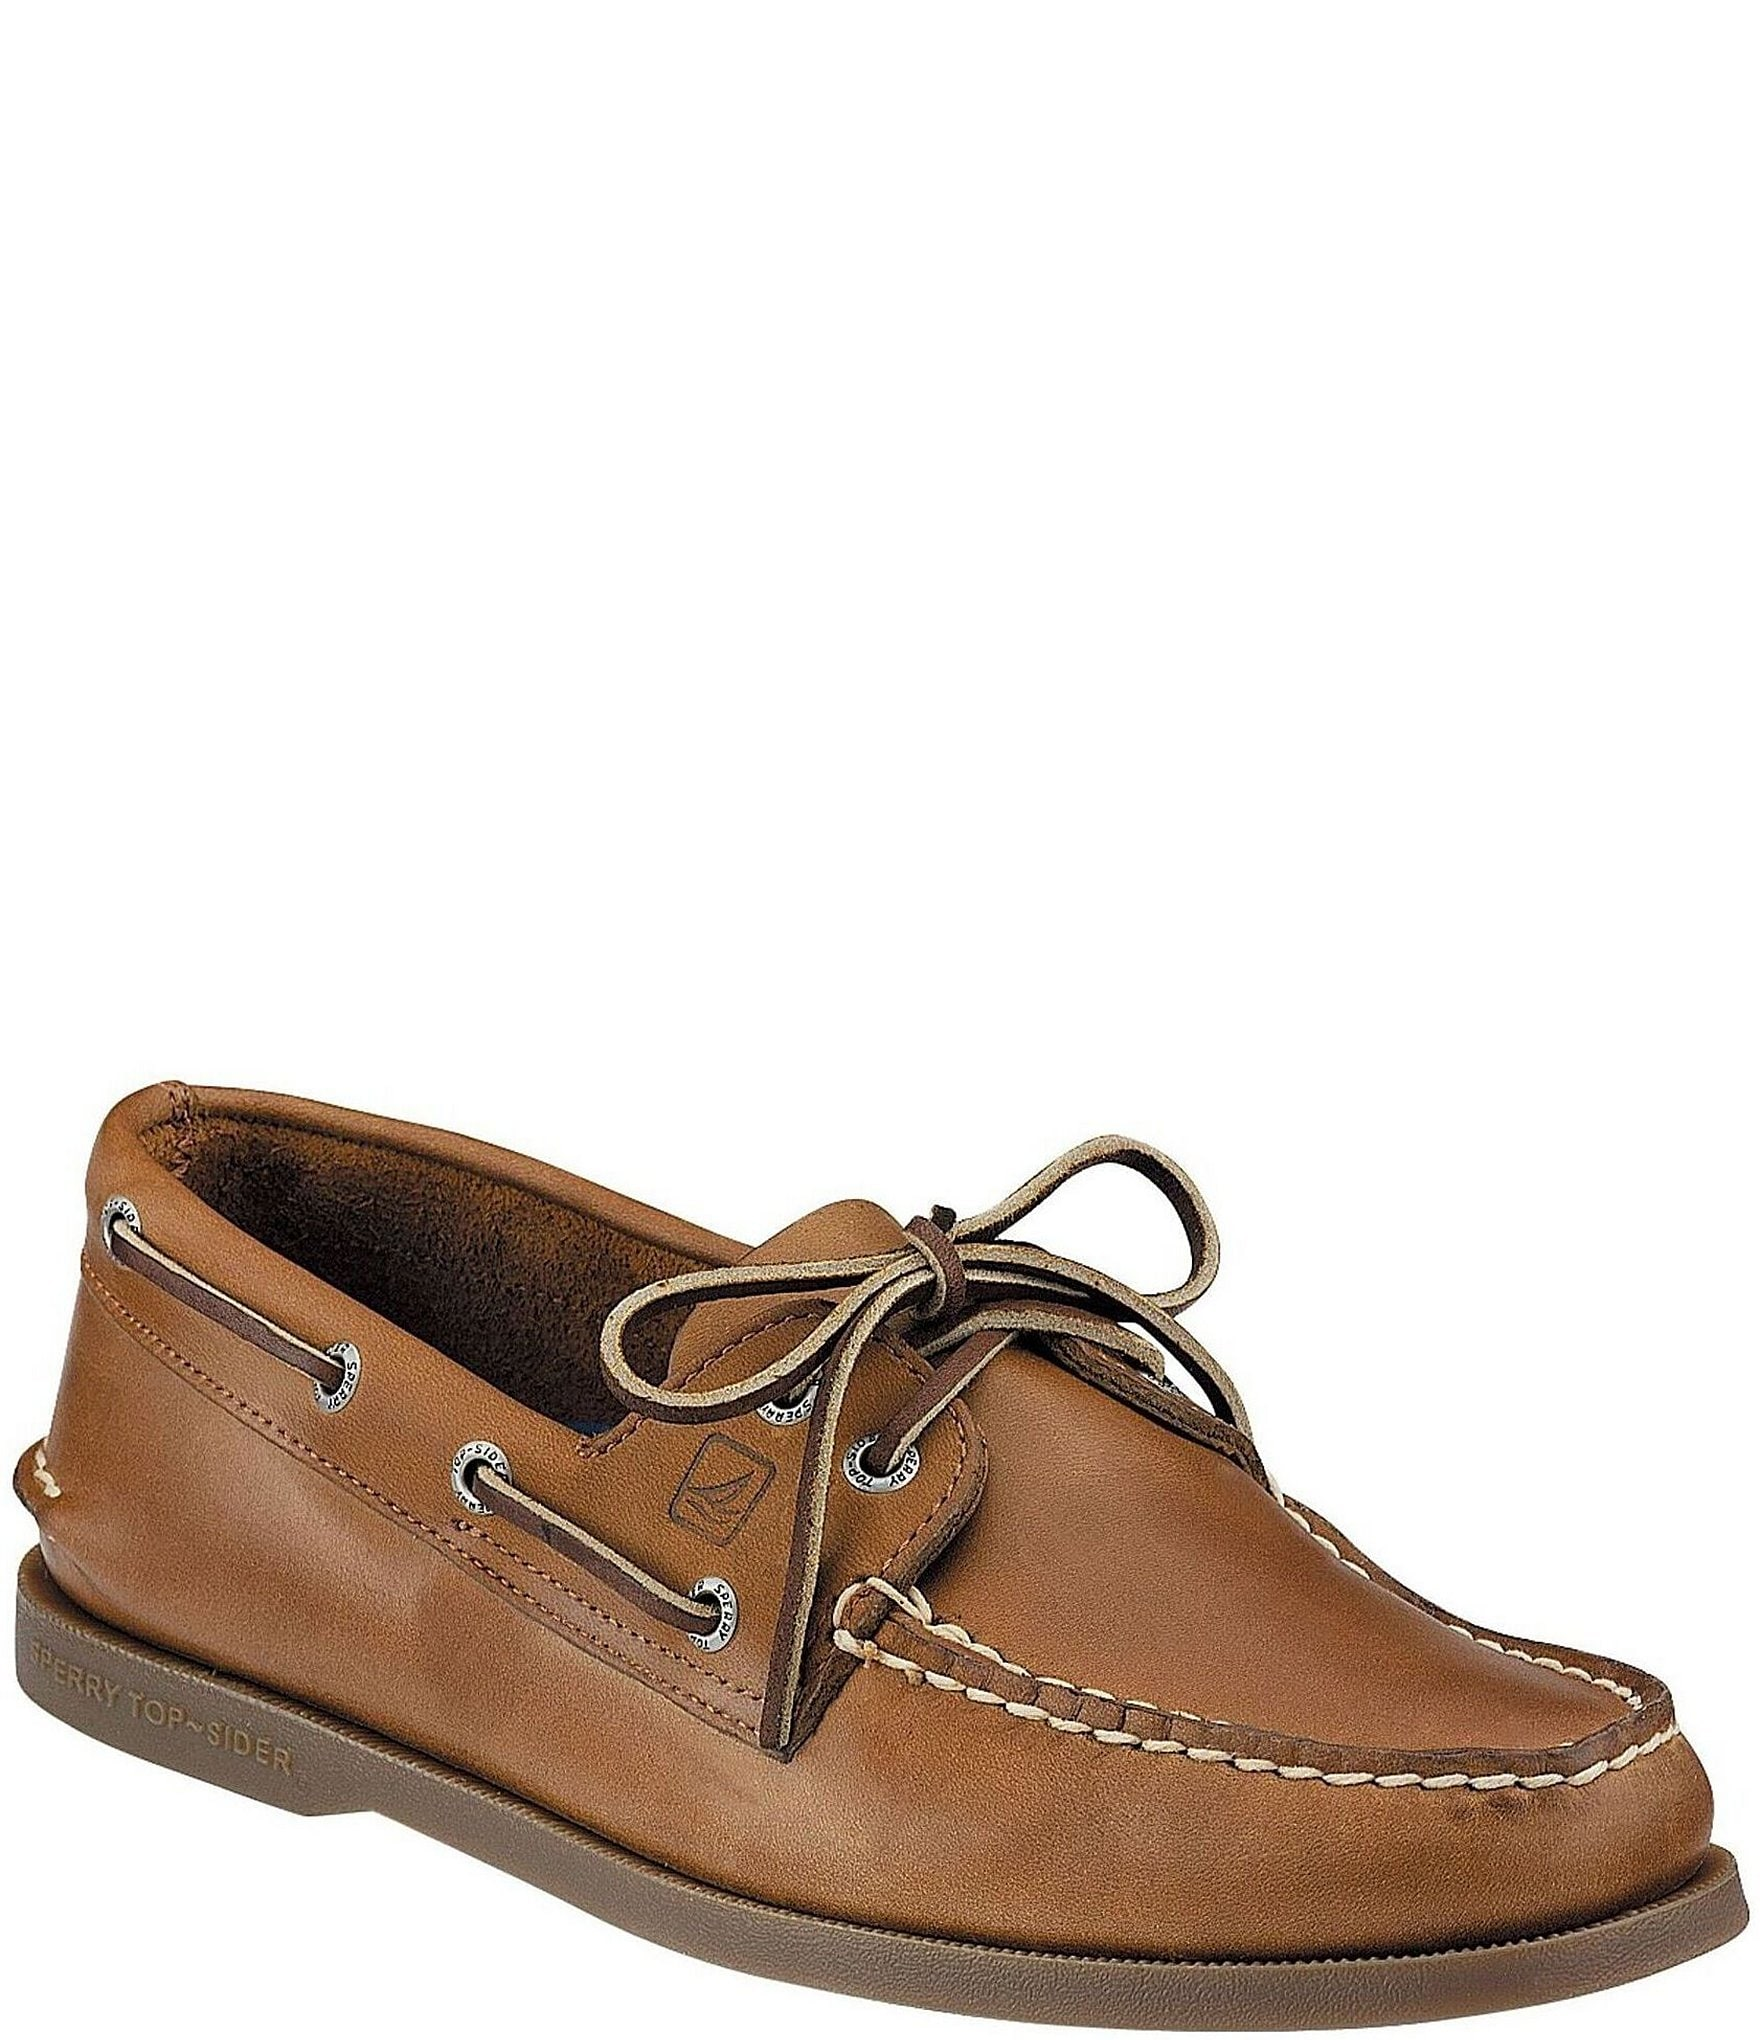 Sperry Top Sider Shoes Authentic Original Boat Shoes